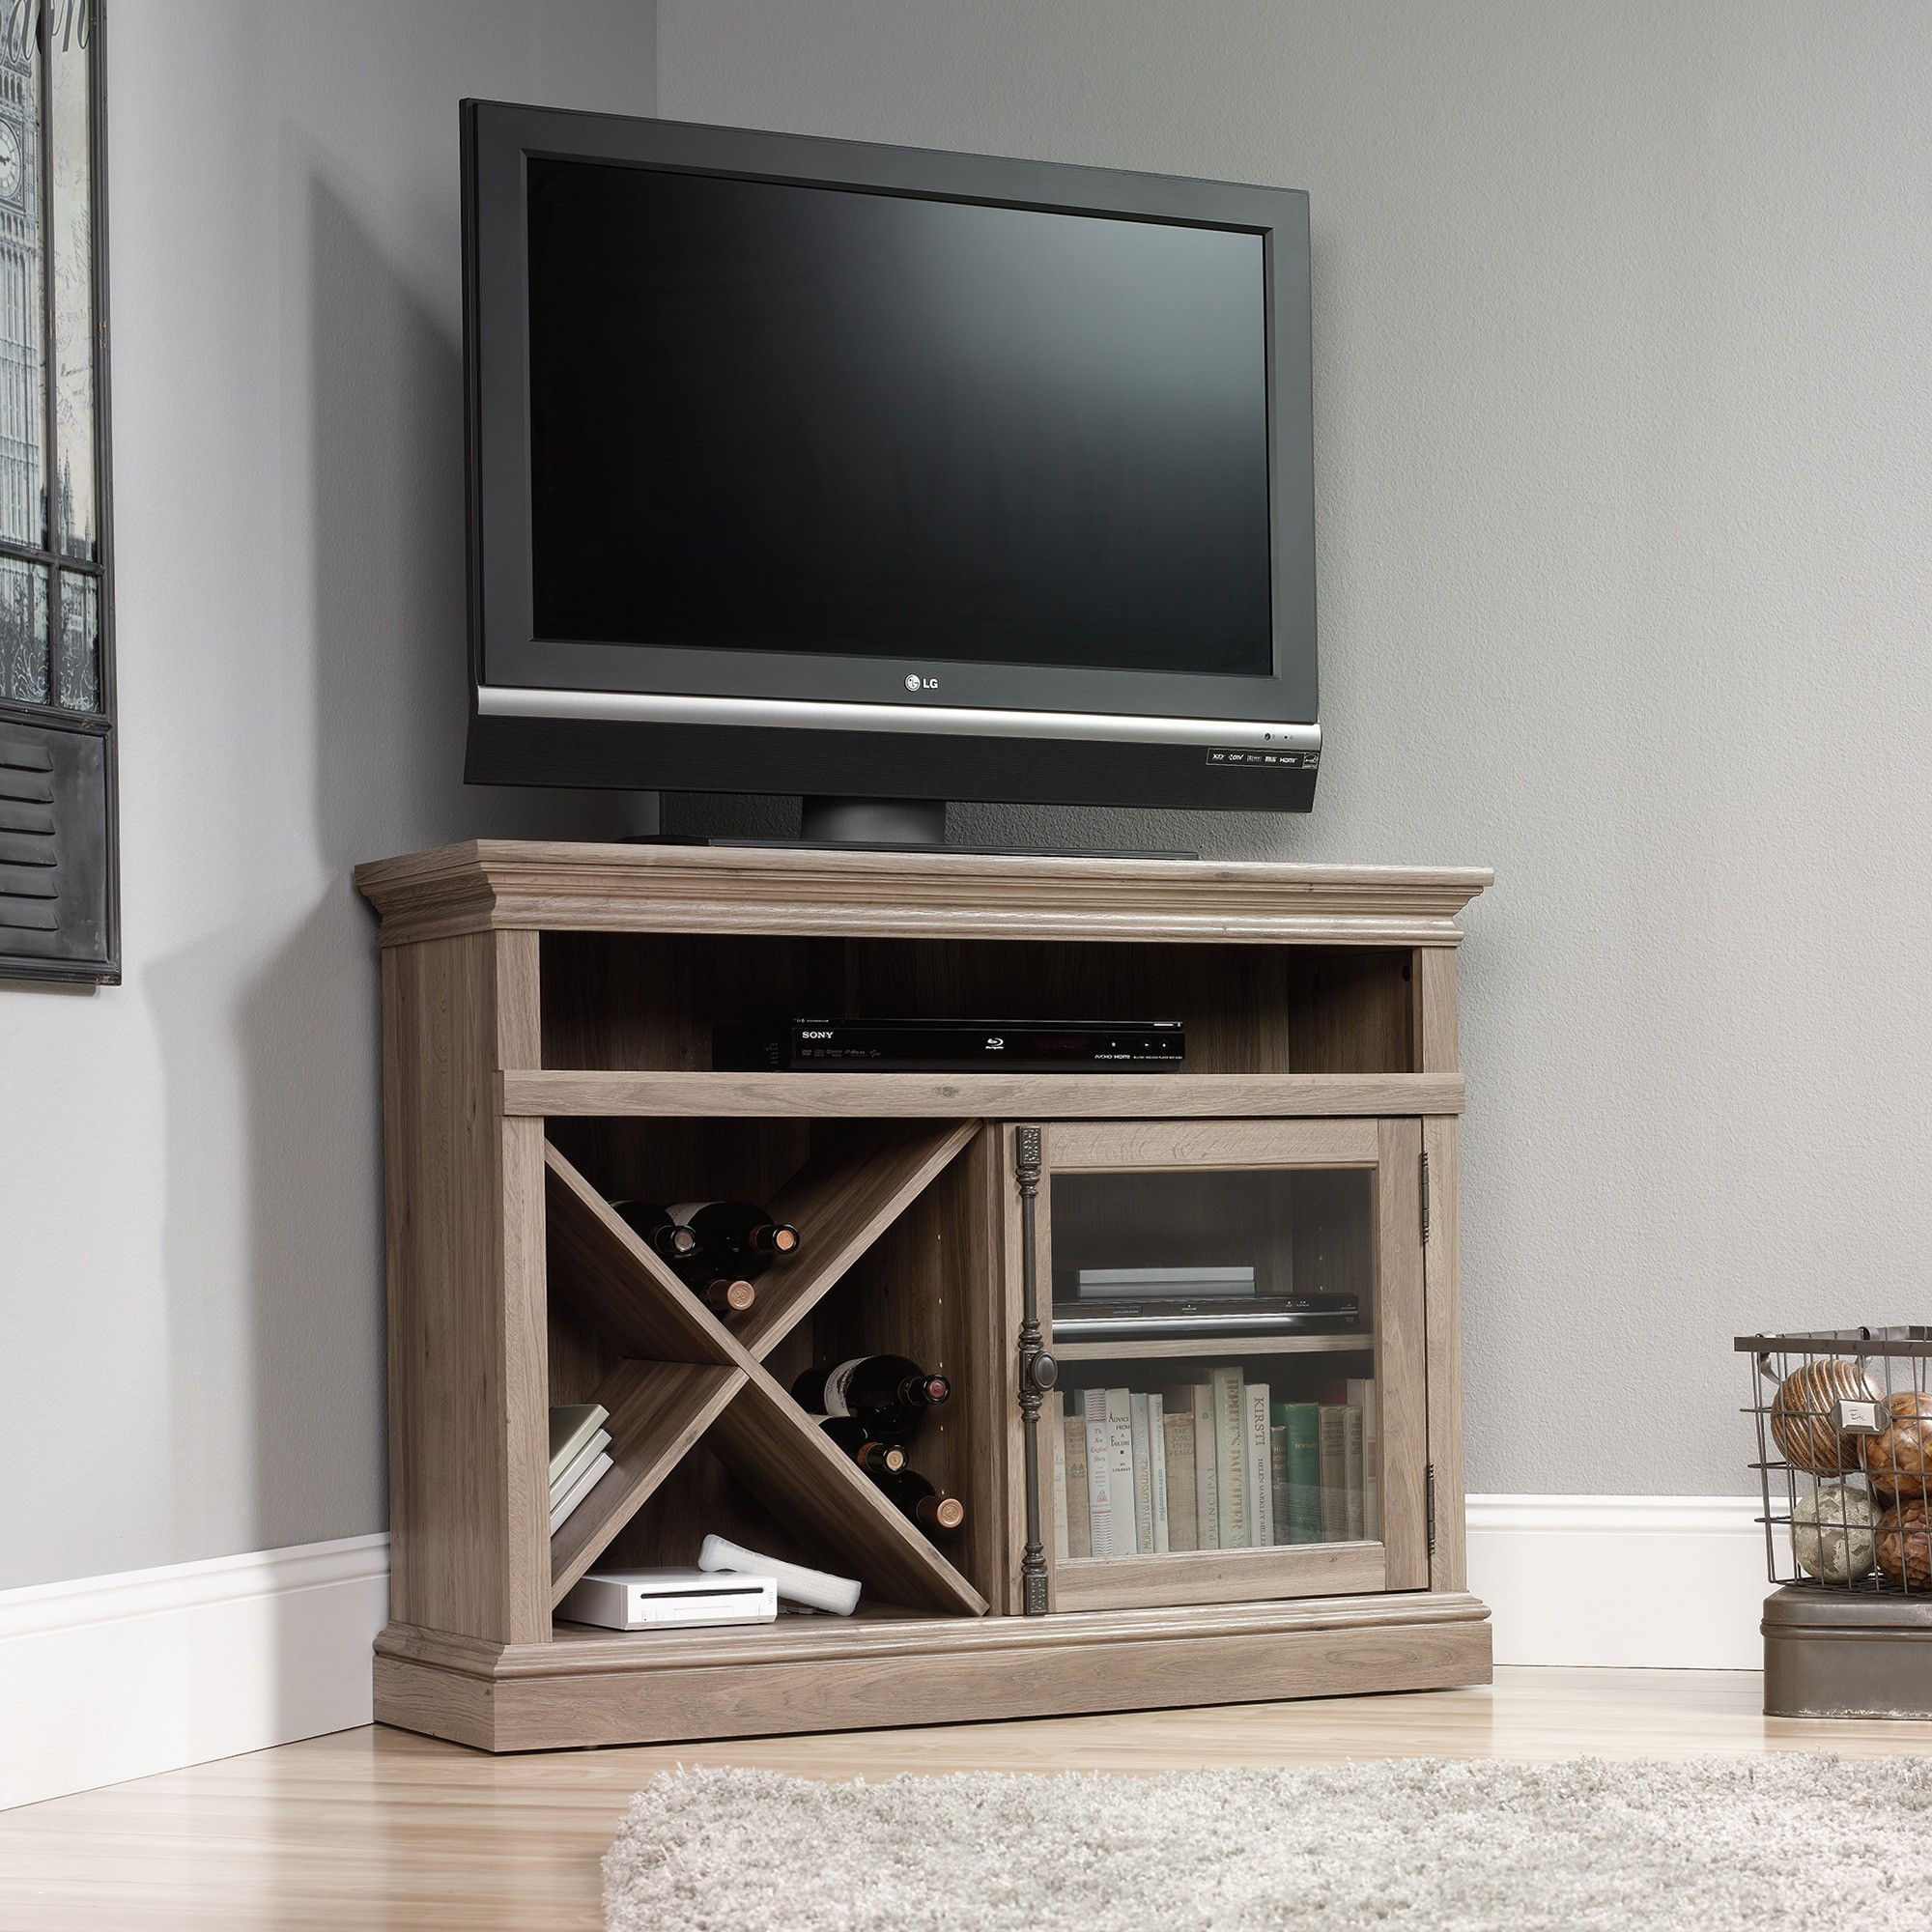 Best ideas about Tall Tv Stands For Bedroom . Save or Pin Find Out Full Gallery of Elegant Tall Corner Tv Stand for Now.